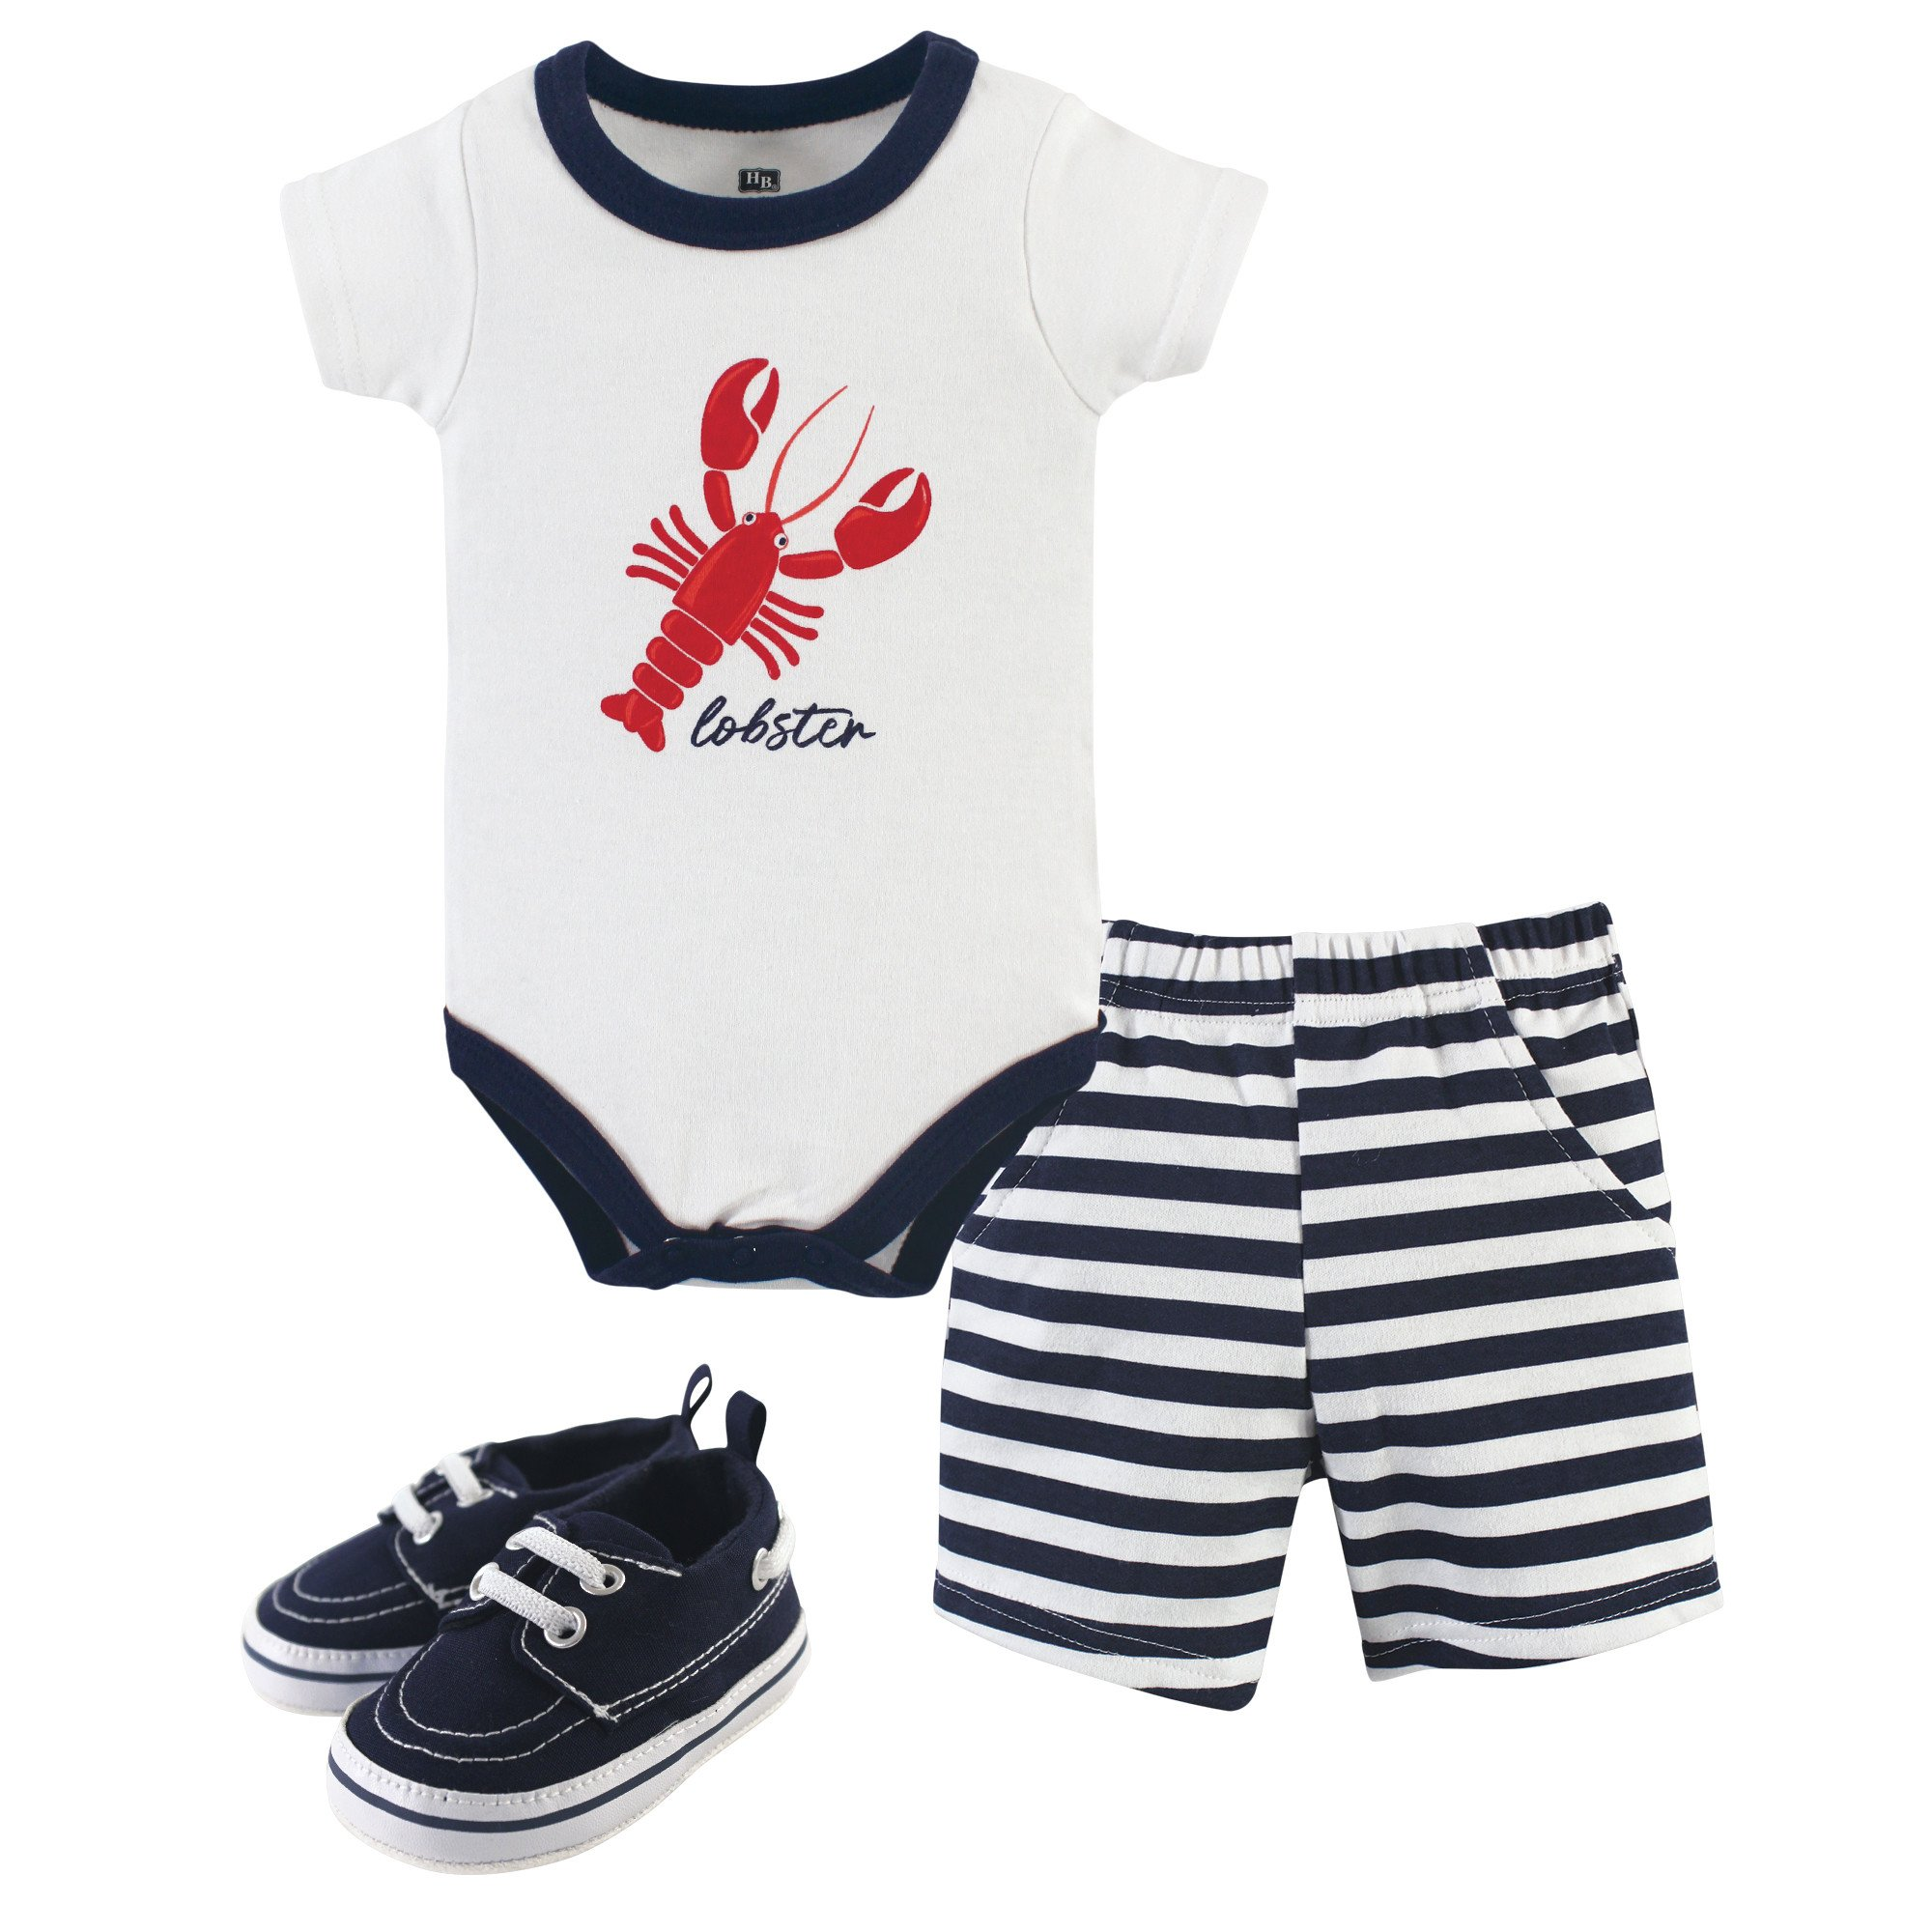 6M Hudson Baby Unisex Baby Bodysuit Bottoms and Shoes 3-6 Months